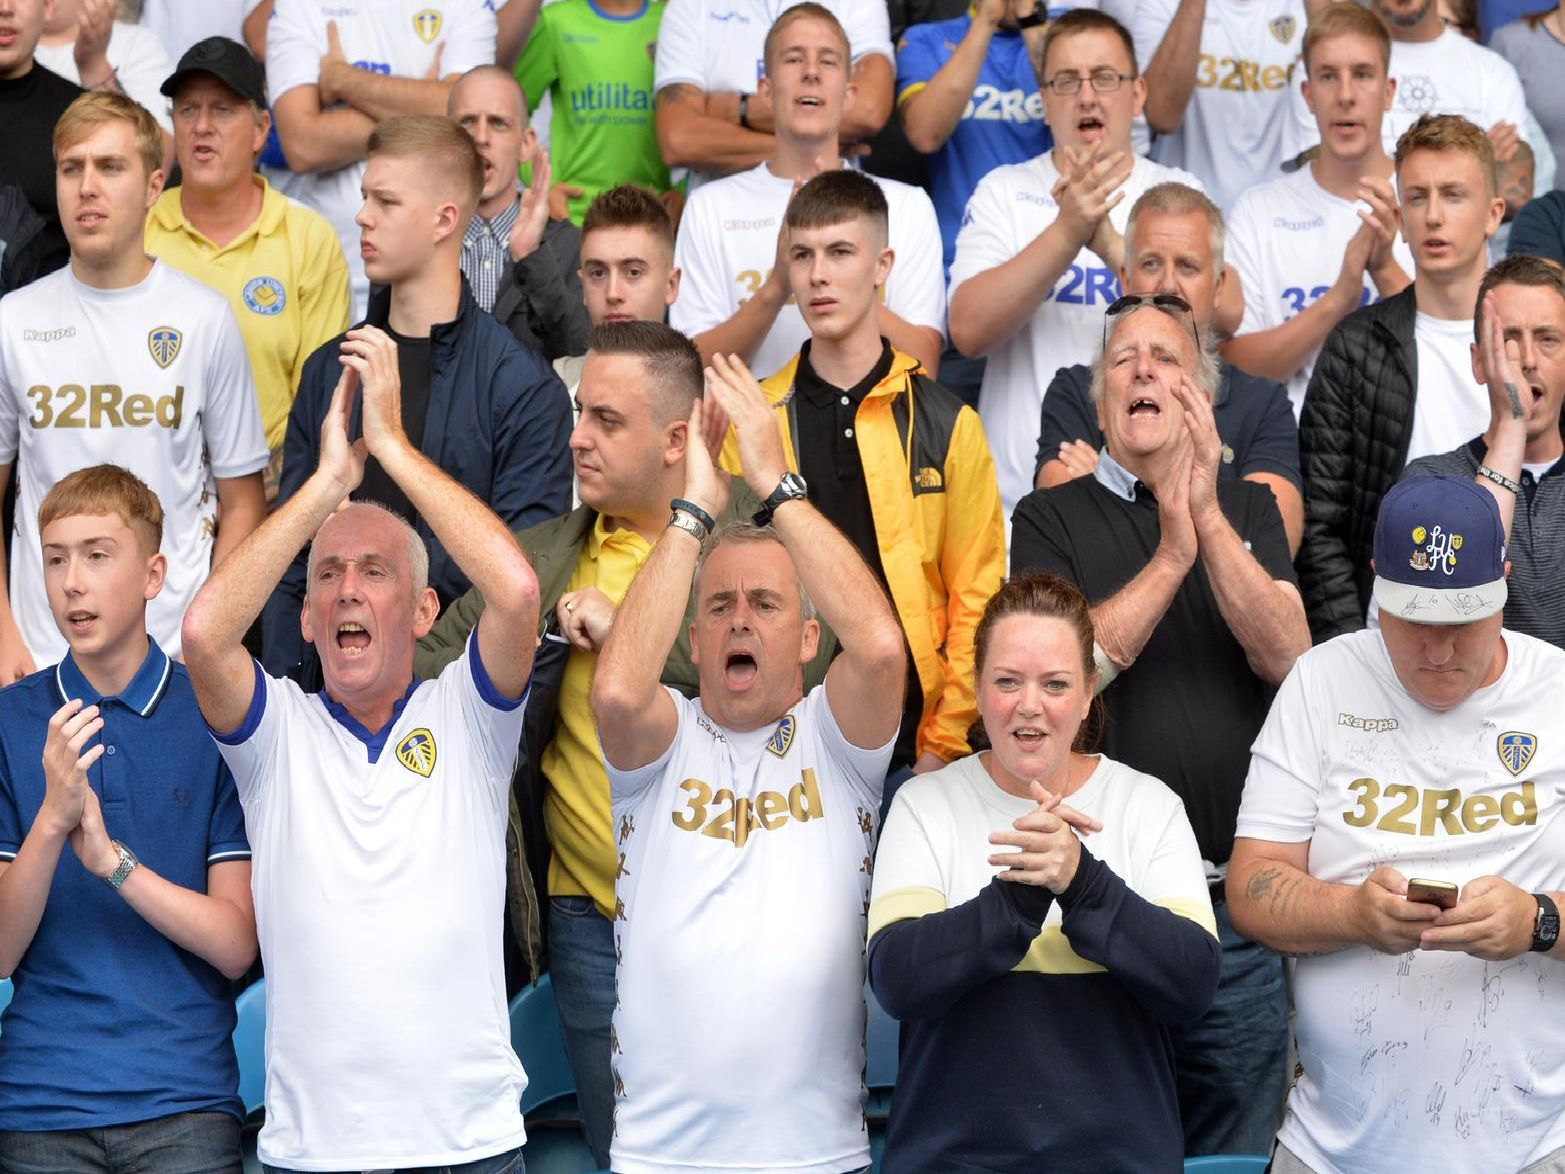 Leeds United fans rank 2nd in the Championship attendance table - but when do they rank when it comes down to filling the stadium?